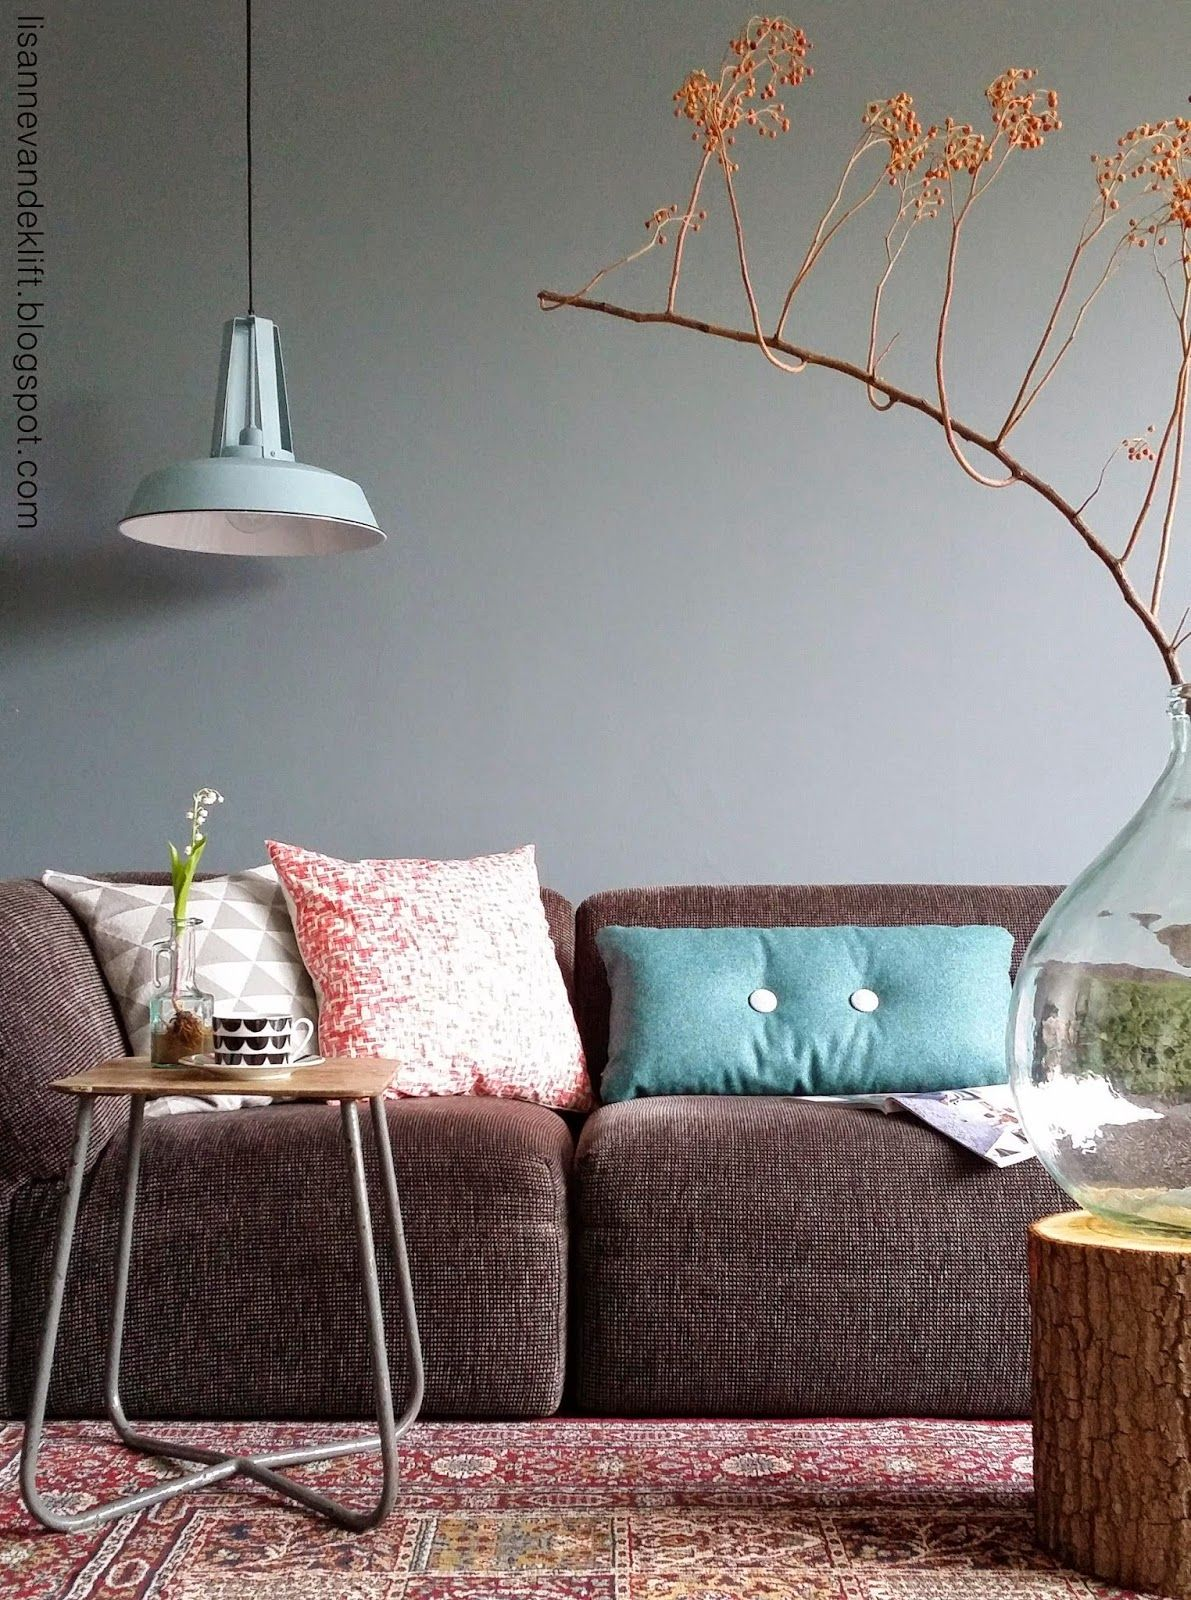 Pure lisanne van de klift living rooms and interiors for Kleurcombinaties interieur